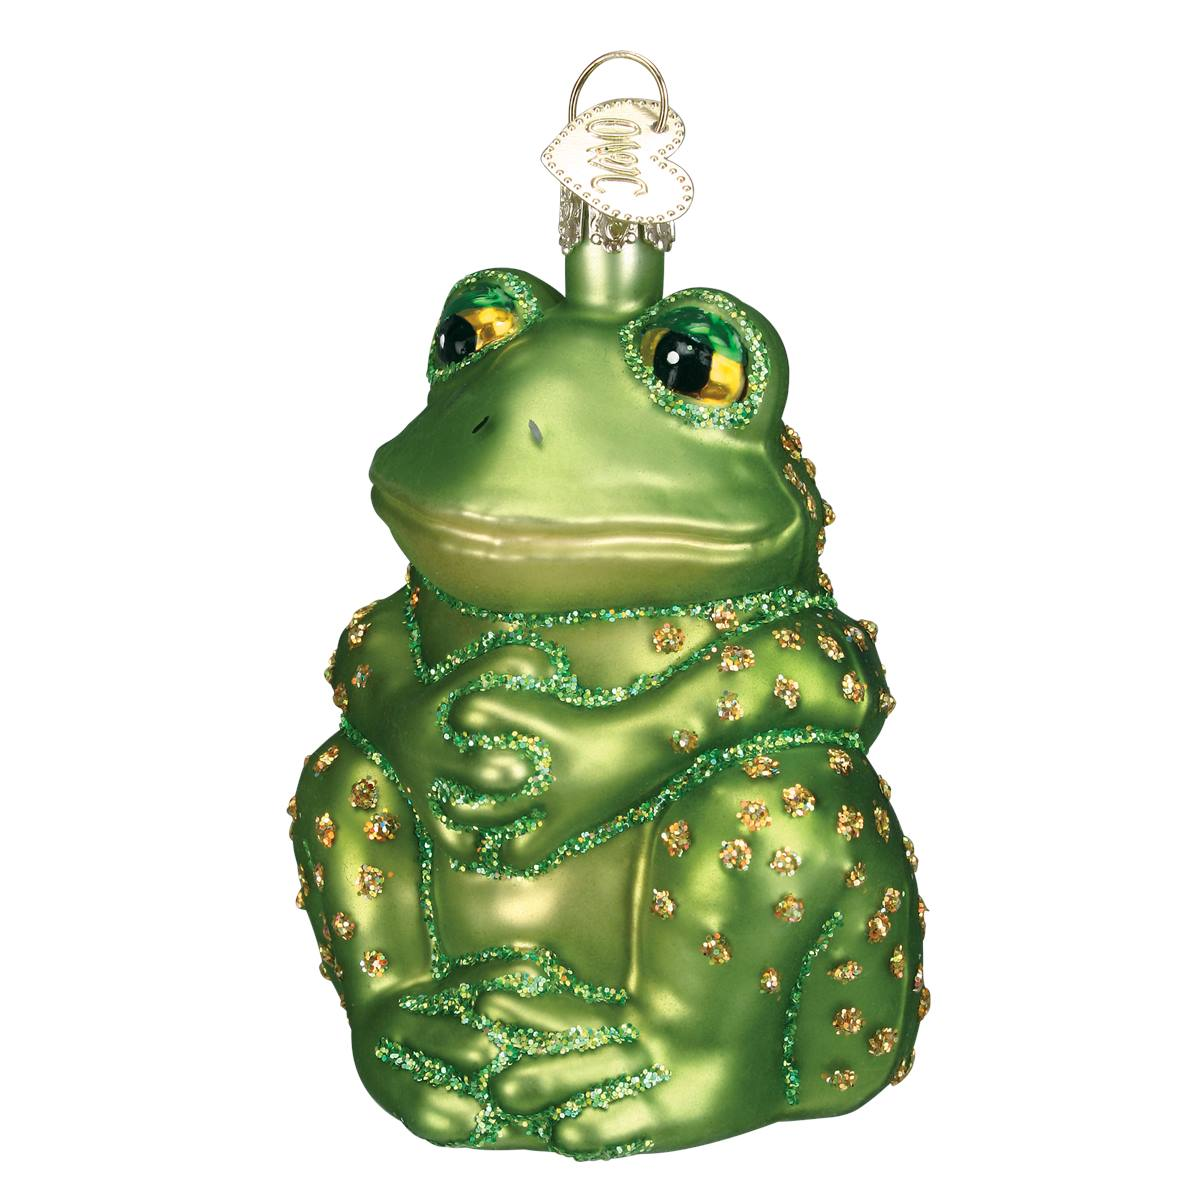 Sitting Frog Ornament Traditions